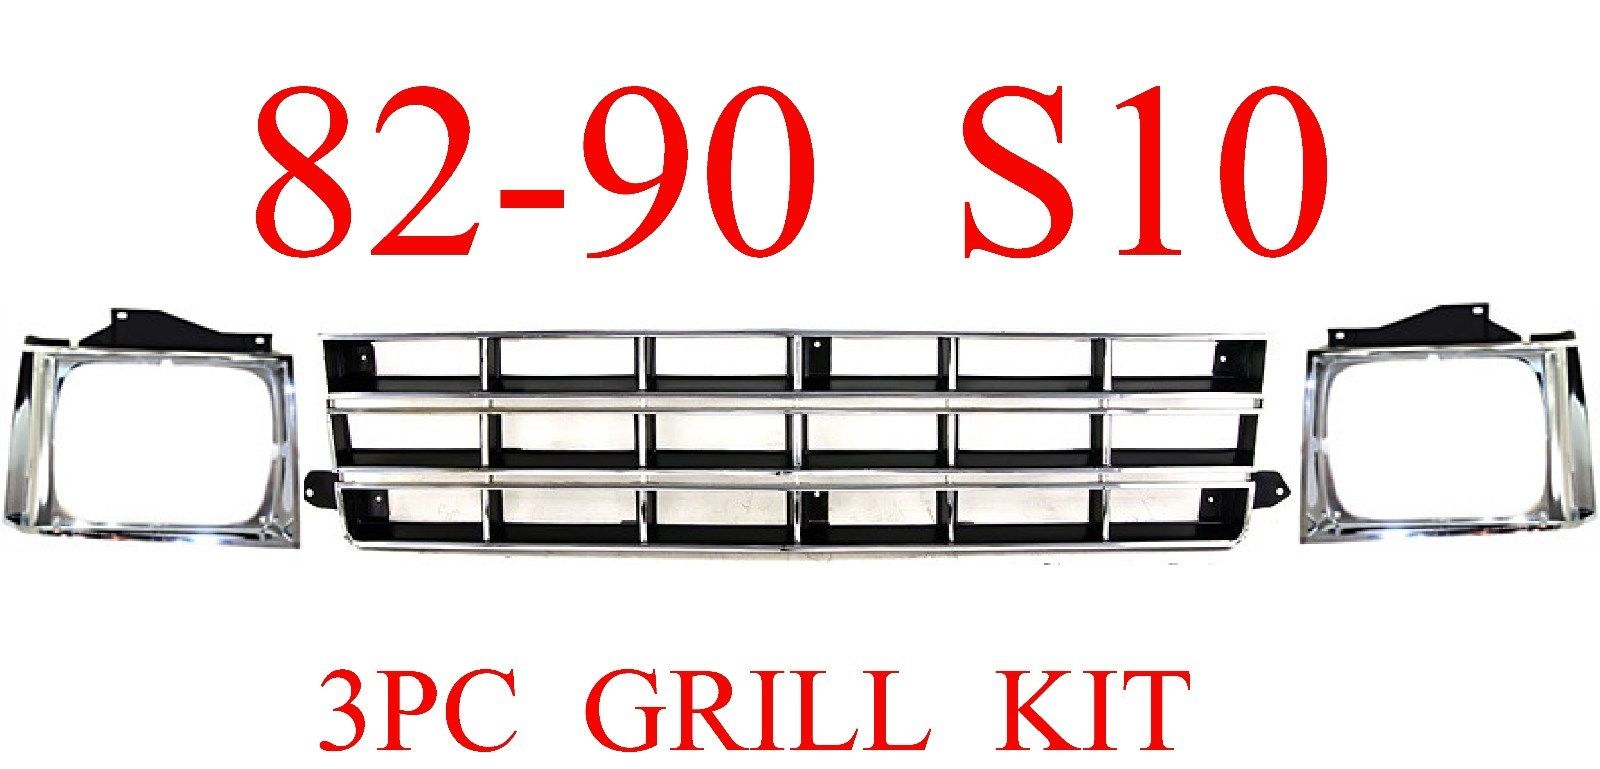 82-90 Chevy S10 3Pc Grill & Head Light Door Kit